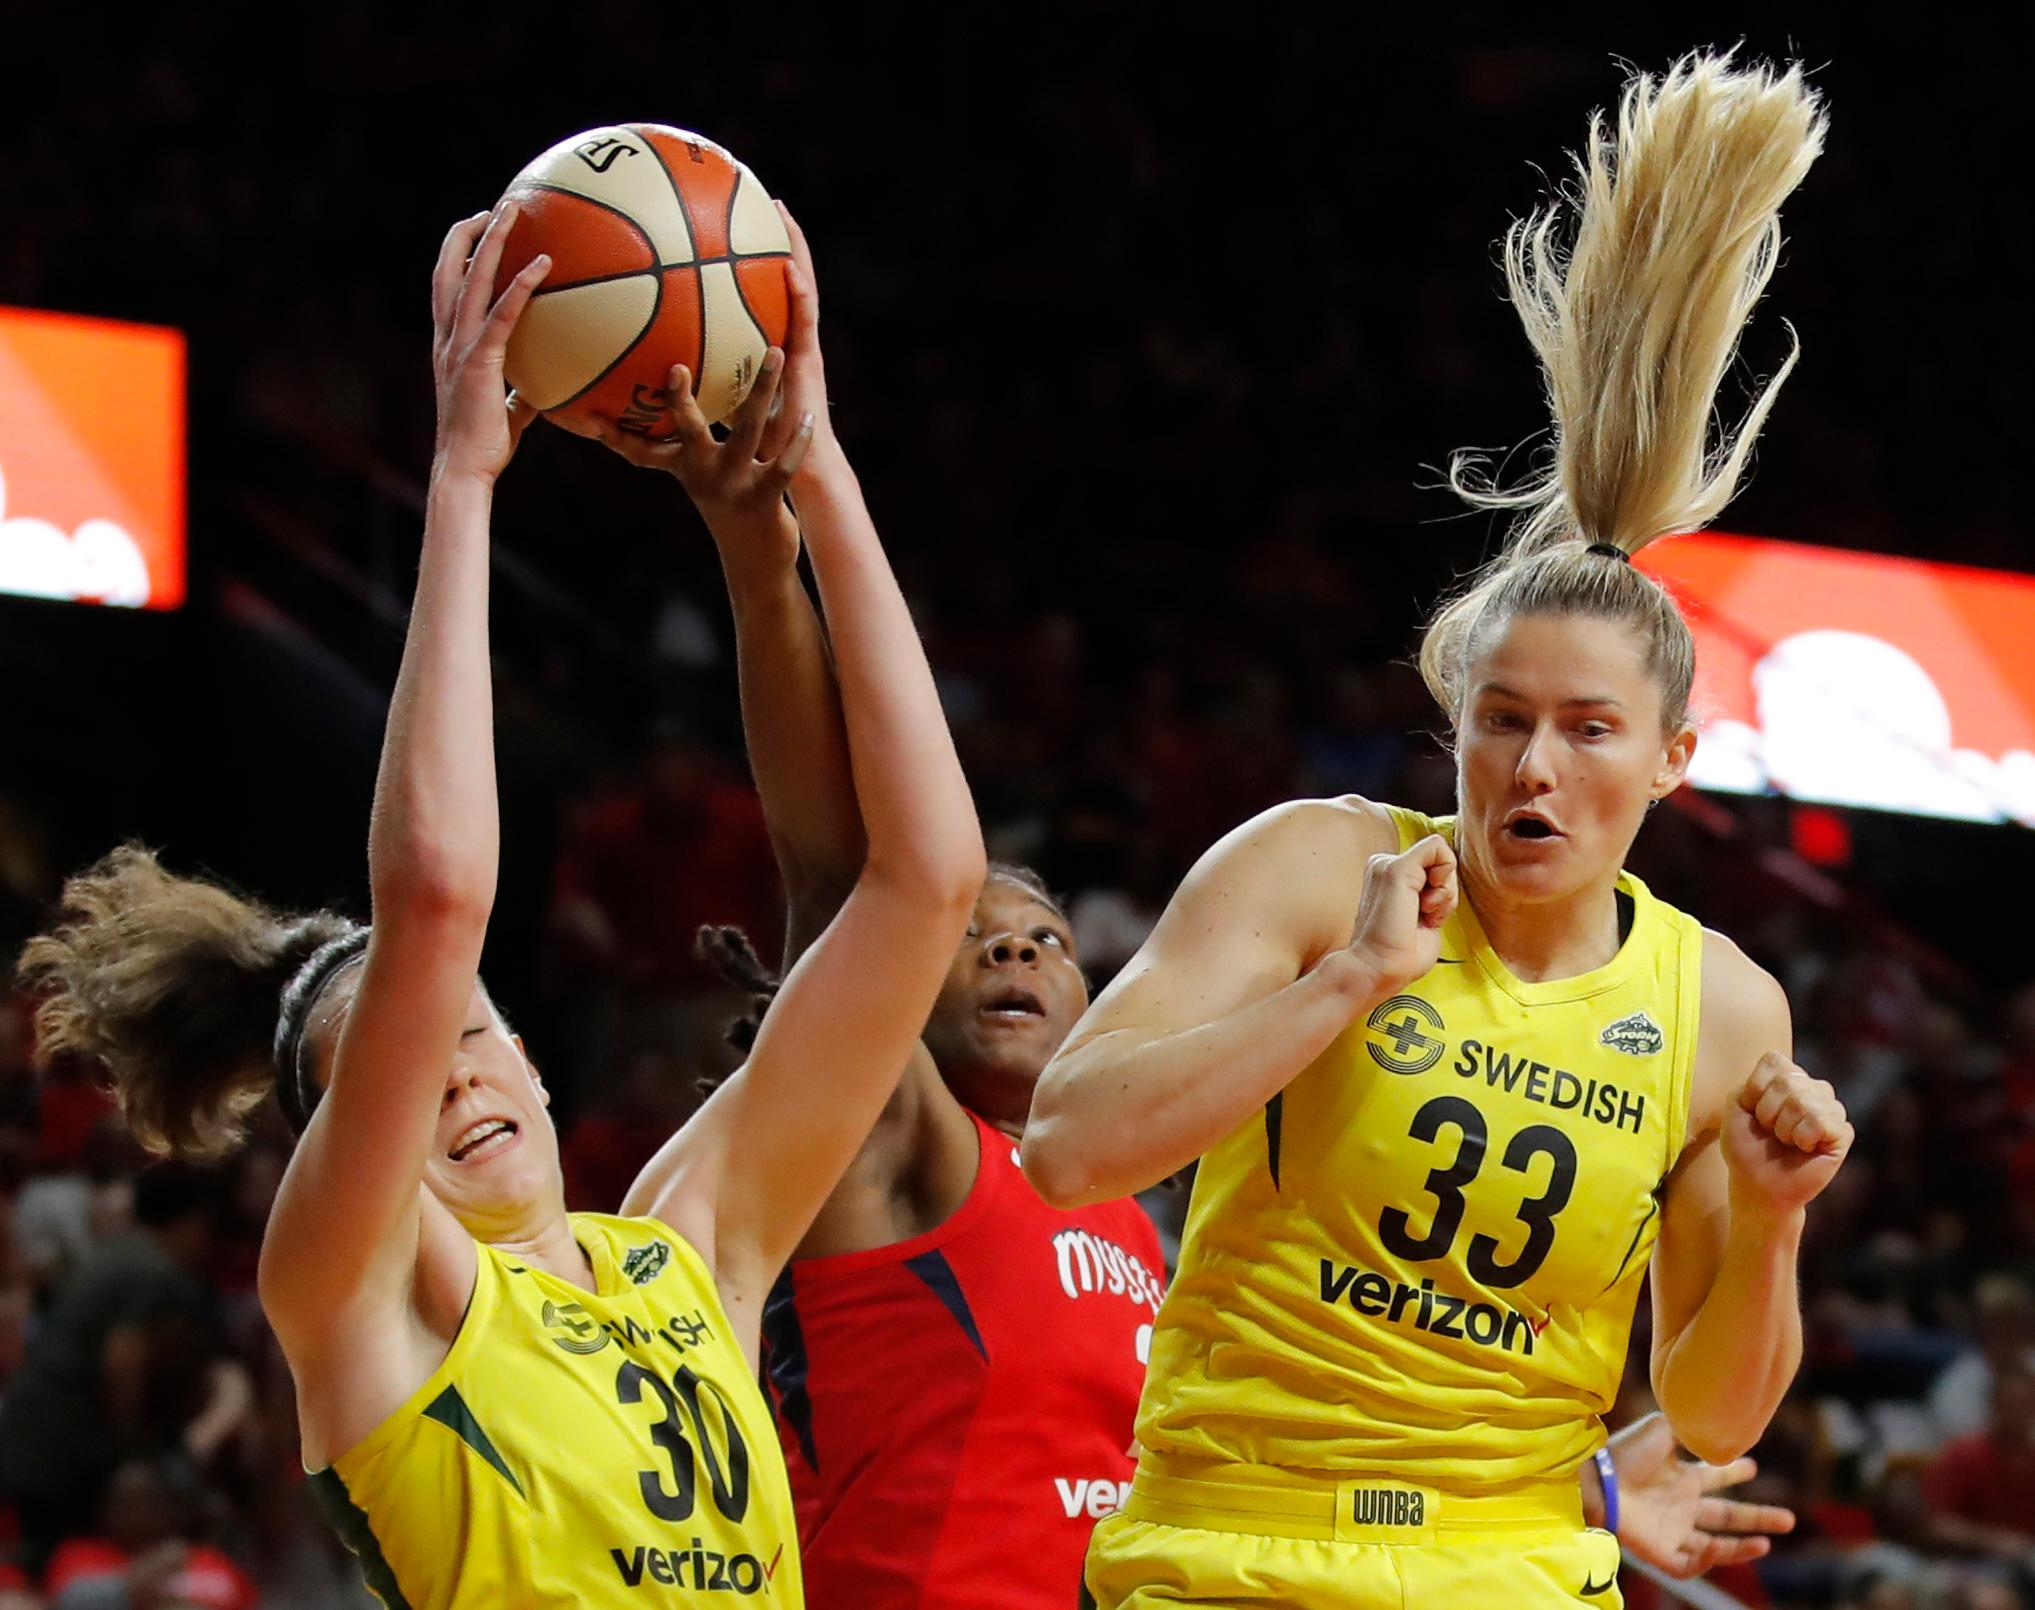 Seattle Storm forward Breanna Stewart (30) fights for control of the ball with Washington Mystics forward Myisha Hines-Allen (2) as Seattle Storm guard Sami Whitcomb (33) leaps at right during the first half of Game 3 of the WNBA basketball finals, Wednesday, Sept. 18 2018, in Fairfax, Va. (AP Photo/Carolyn Kaster)